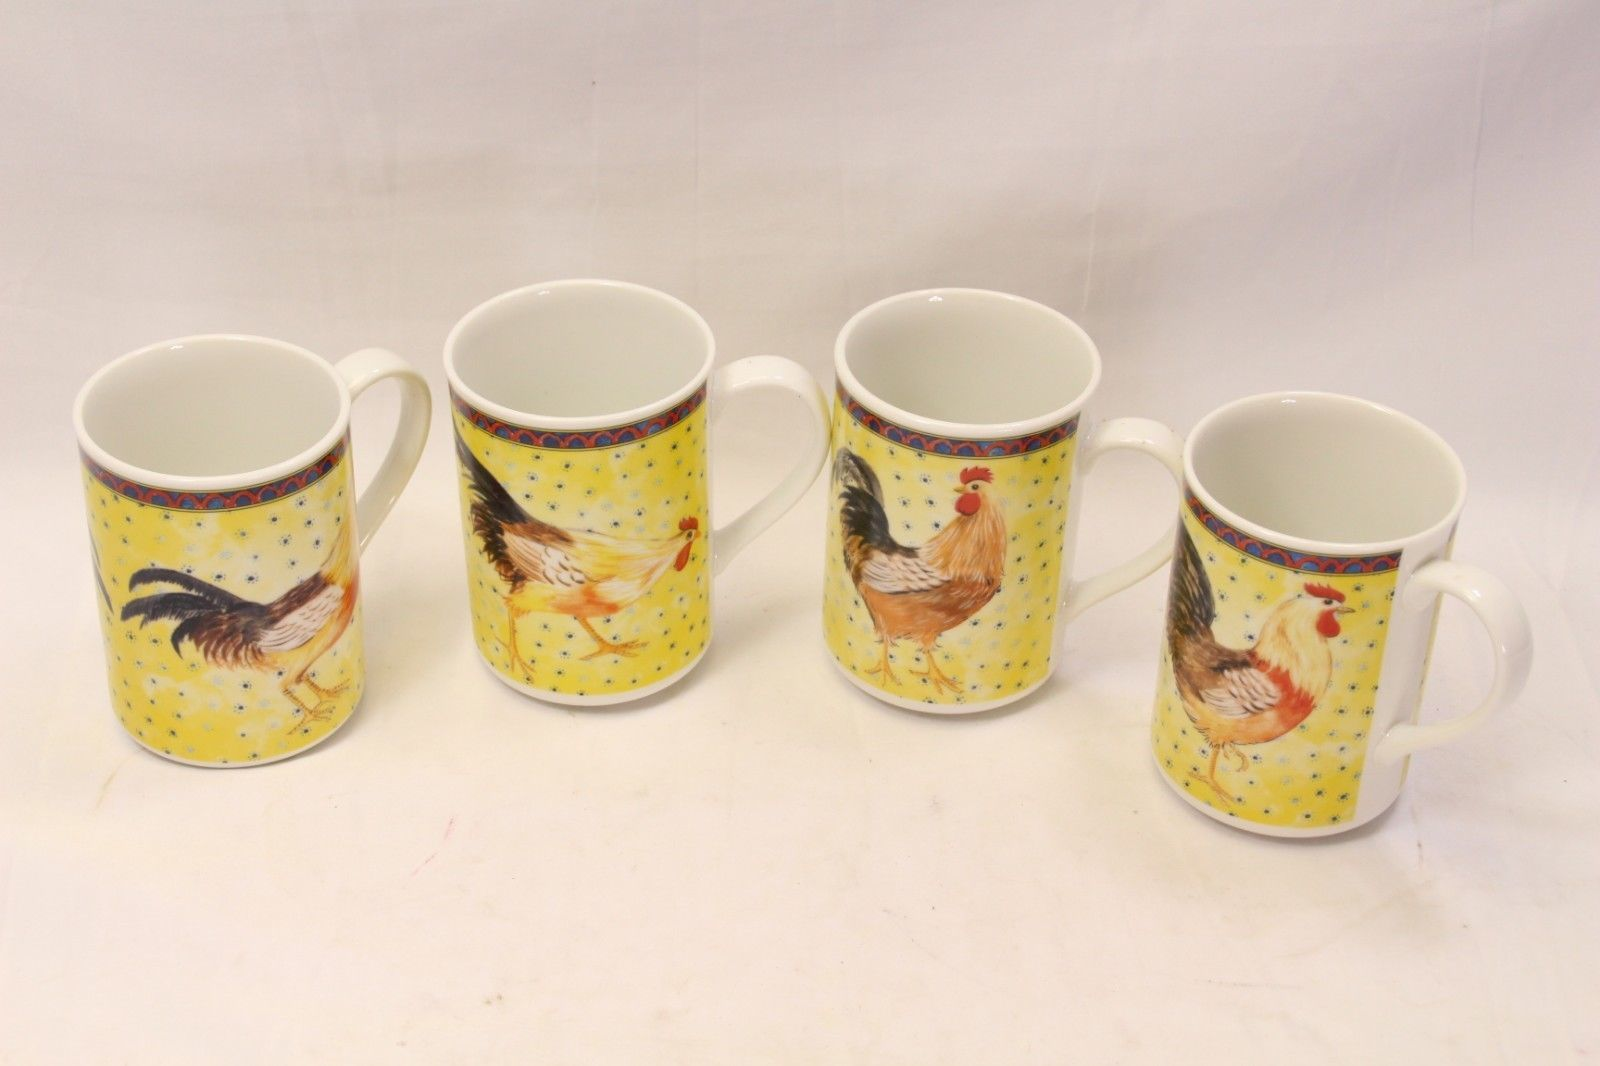 American Atelier Petite Provence Rooster Mugs Set of 12